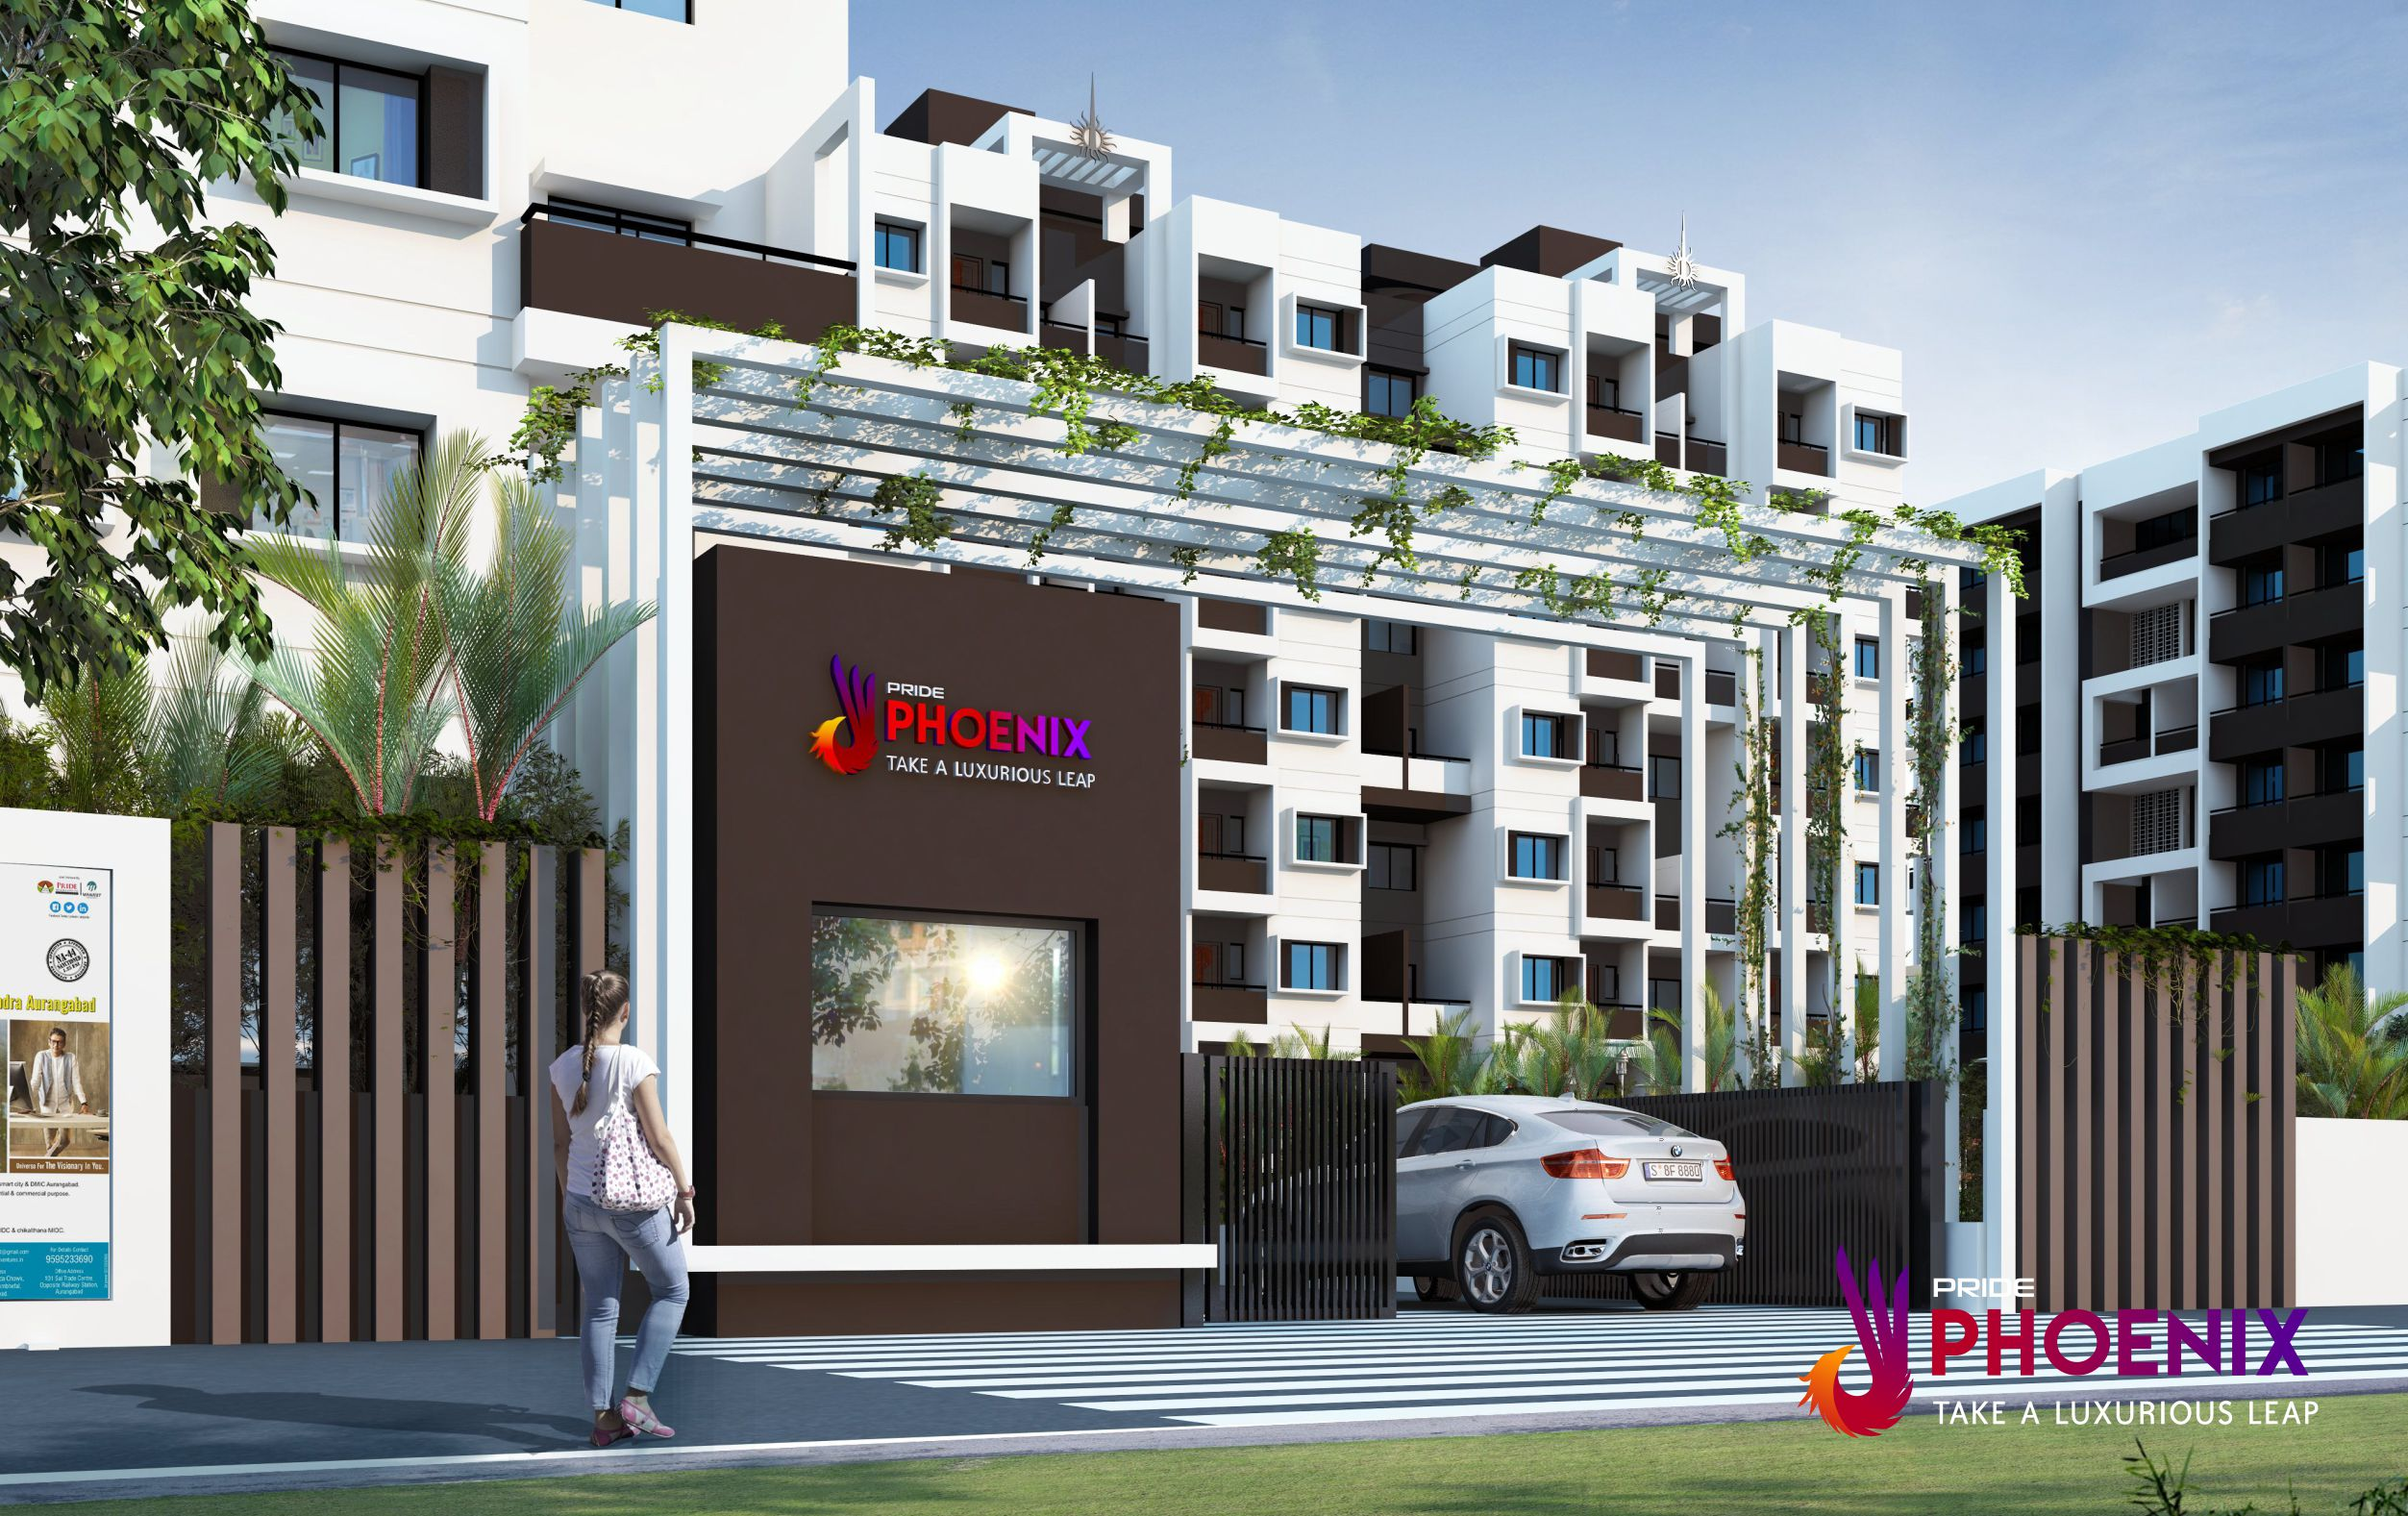 maha rera approved projects branded entrance near airport pride phoenix projects jalna road touch near airport in front of airport aurangabad